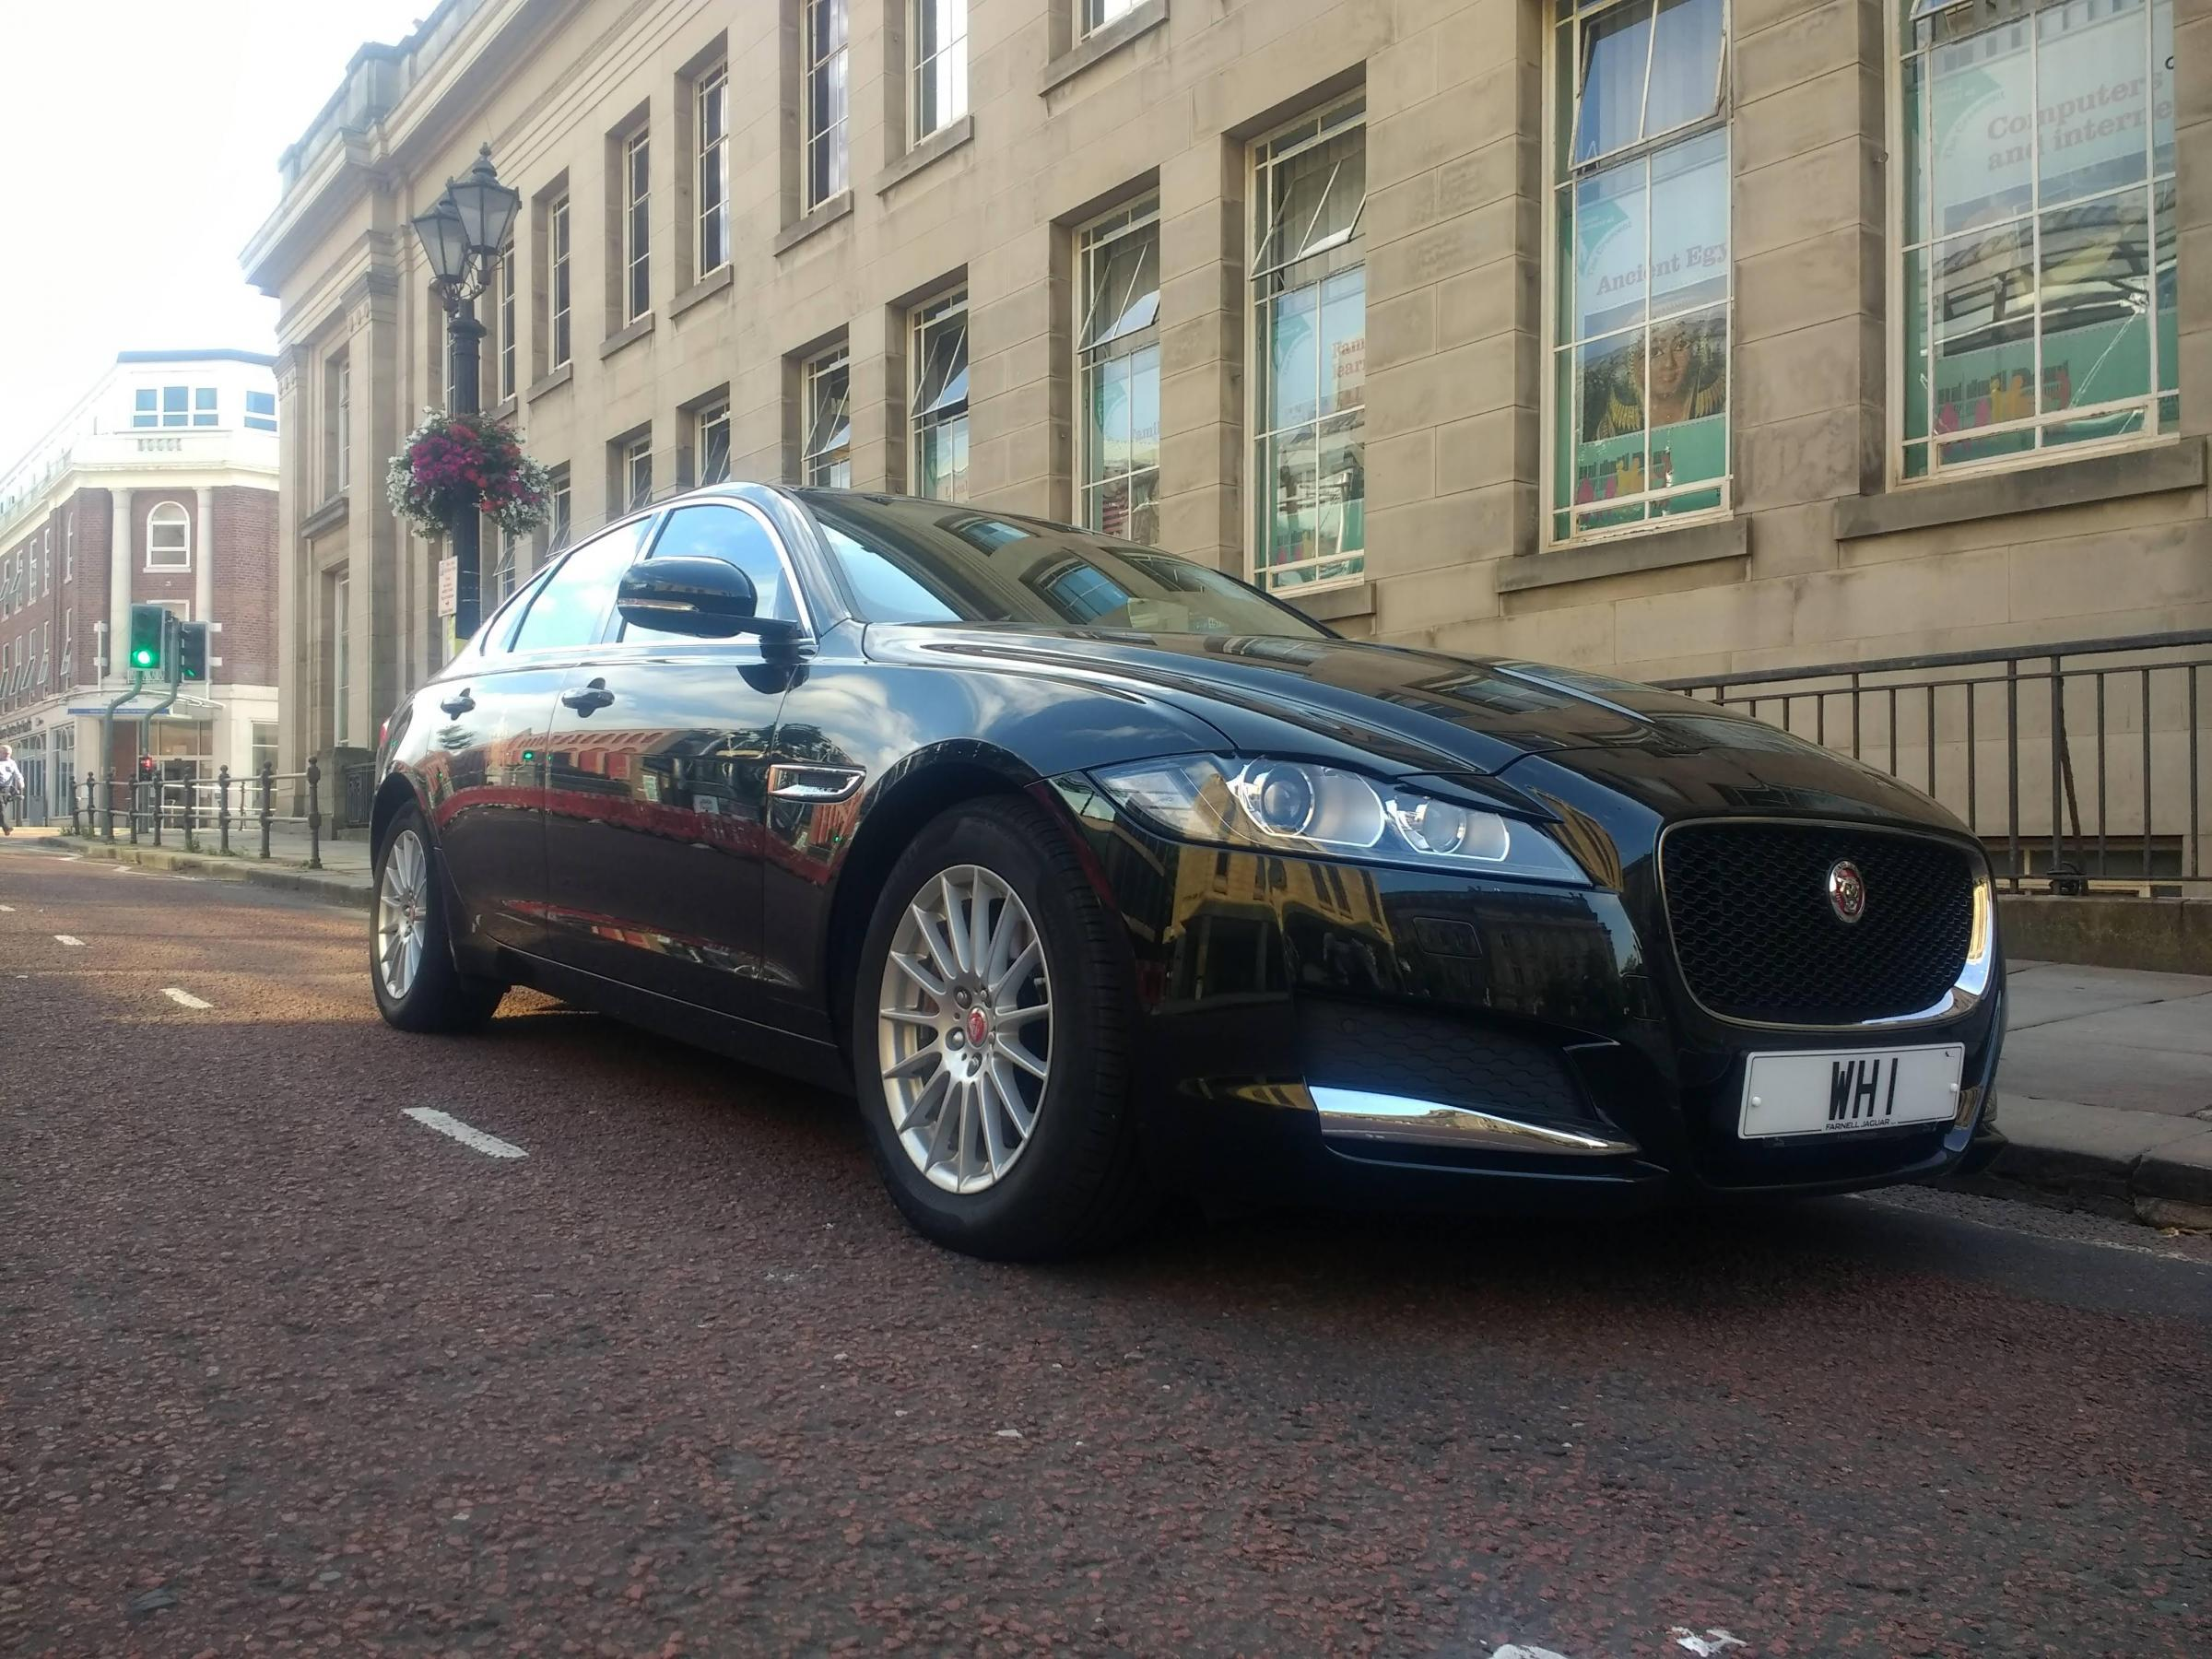 The Mayor of Bolton's Jaguar XF Prestige cost of £15,841 over three years